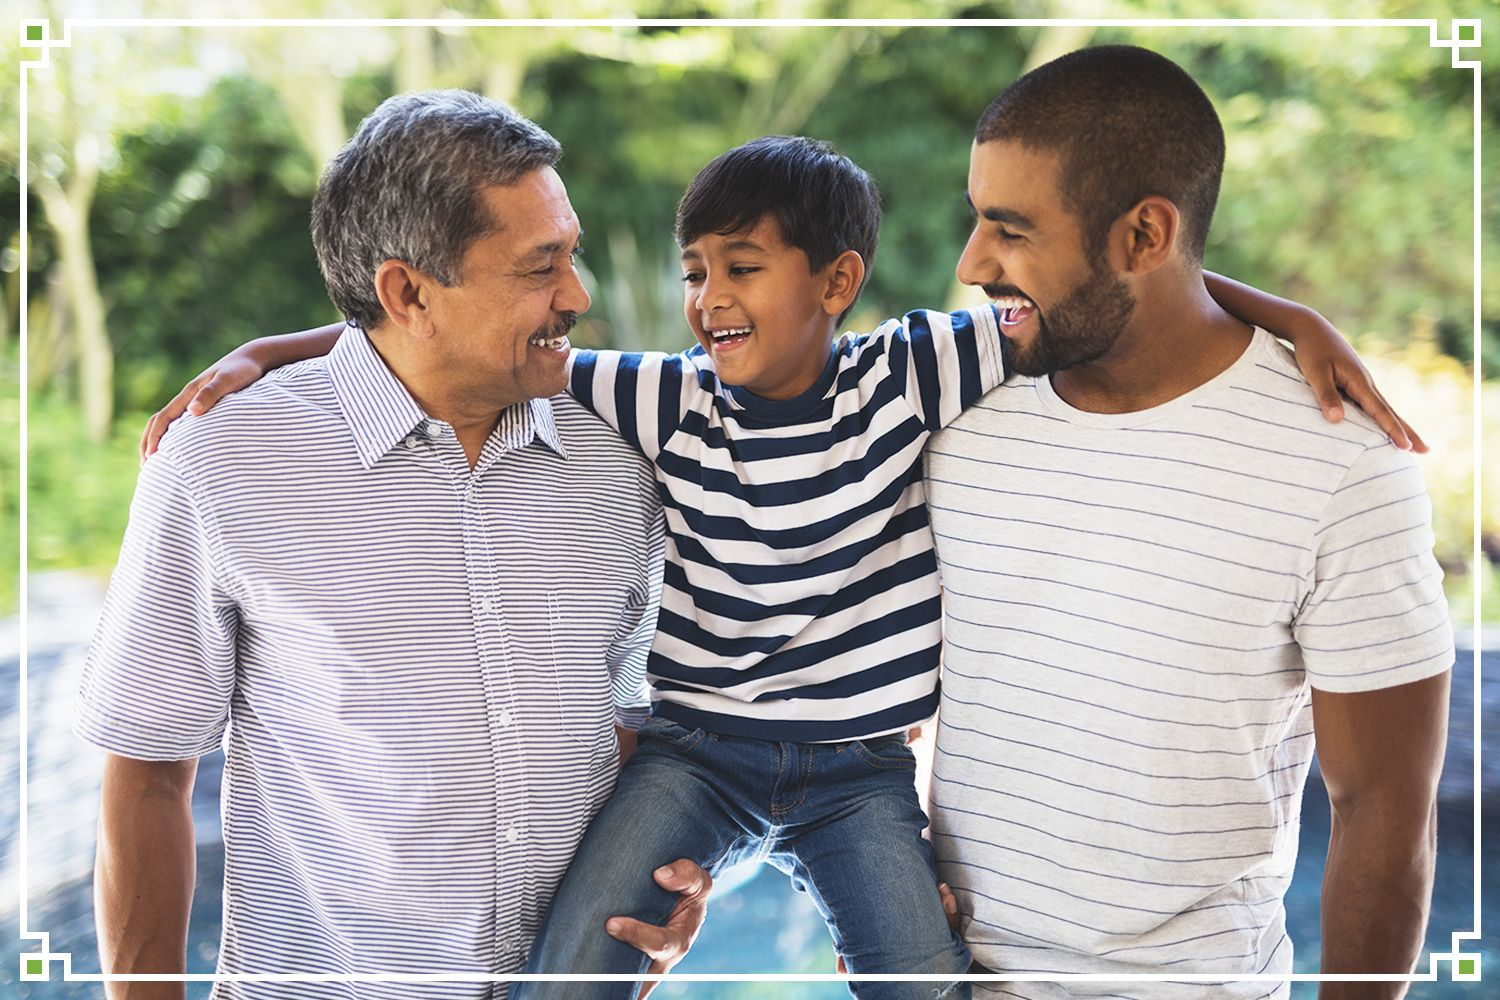 father and grandfather holding young boy, laughing